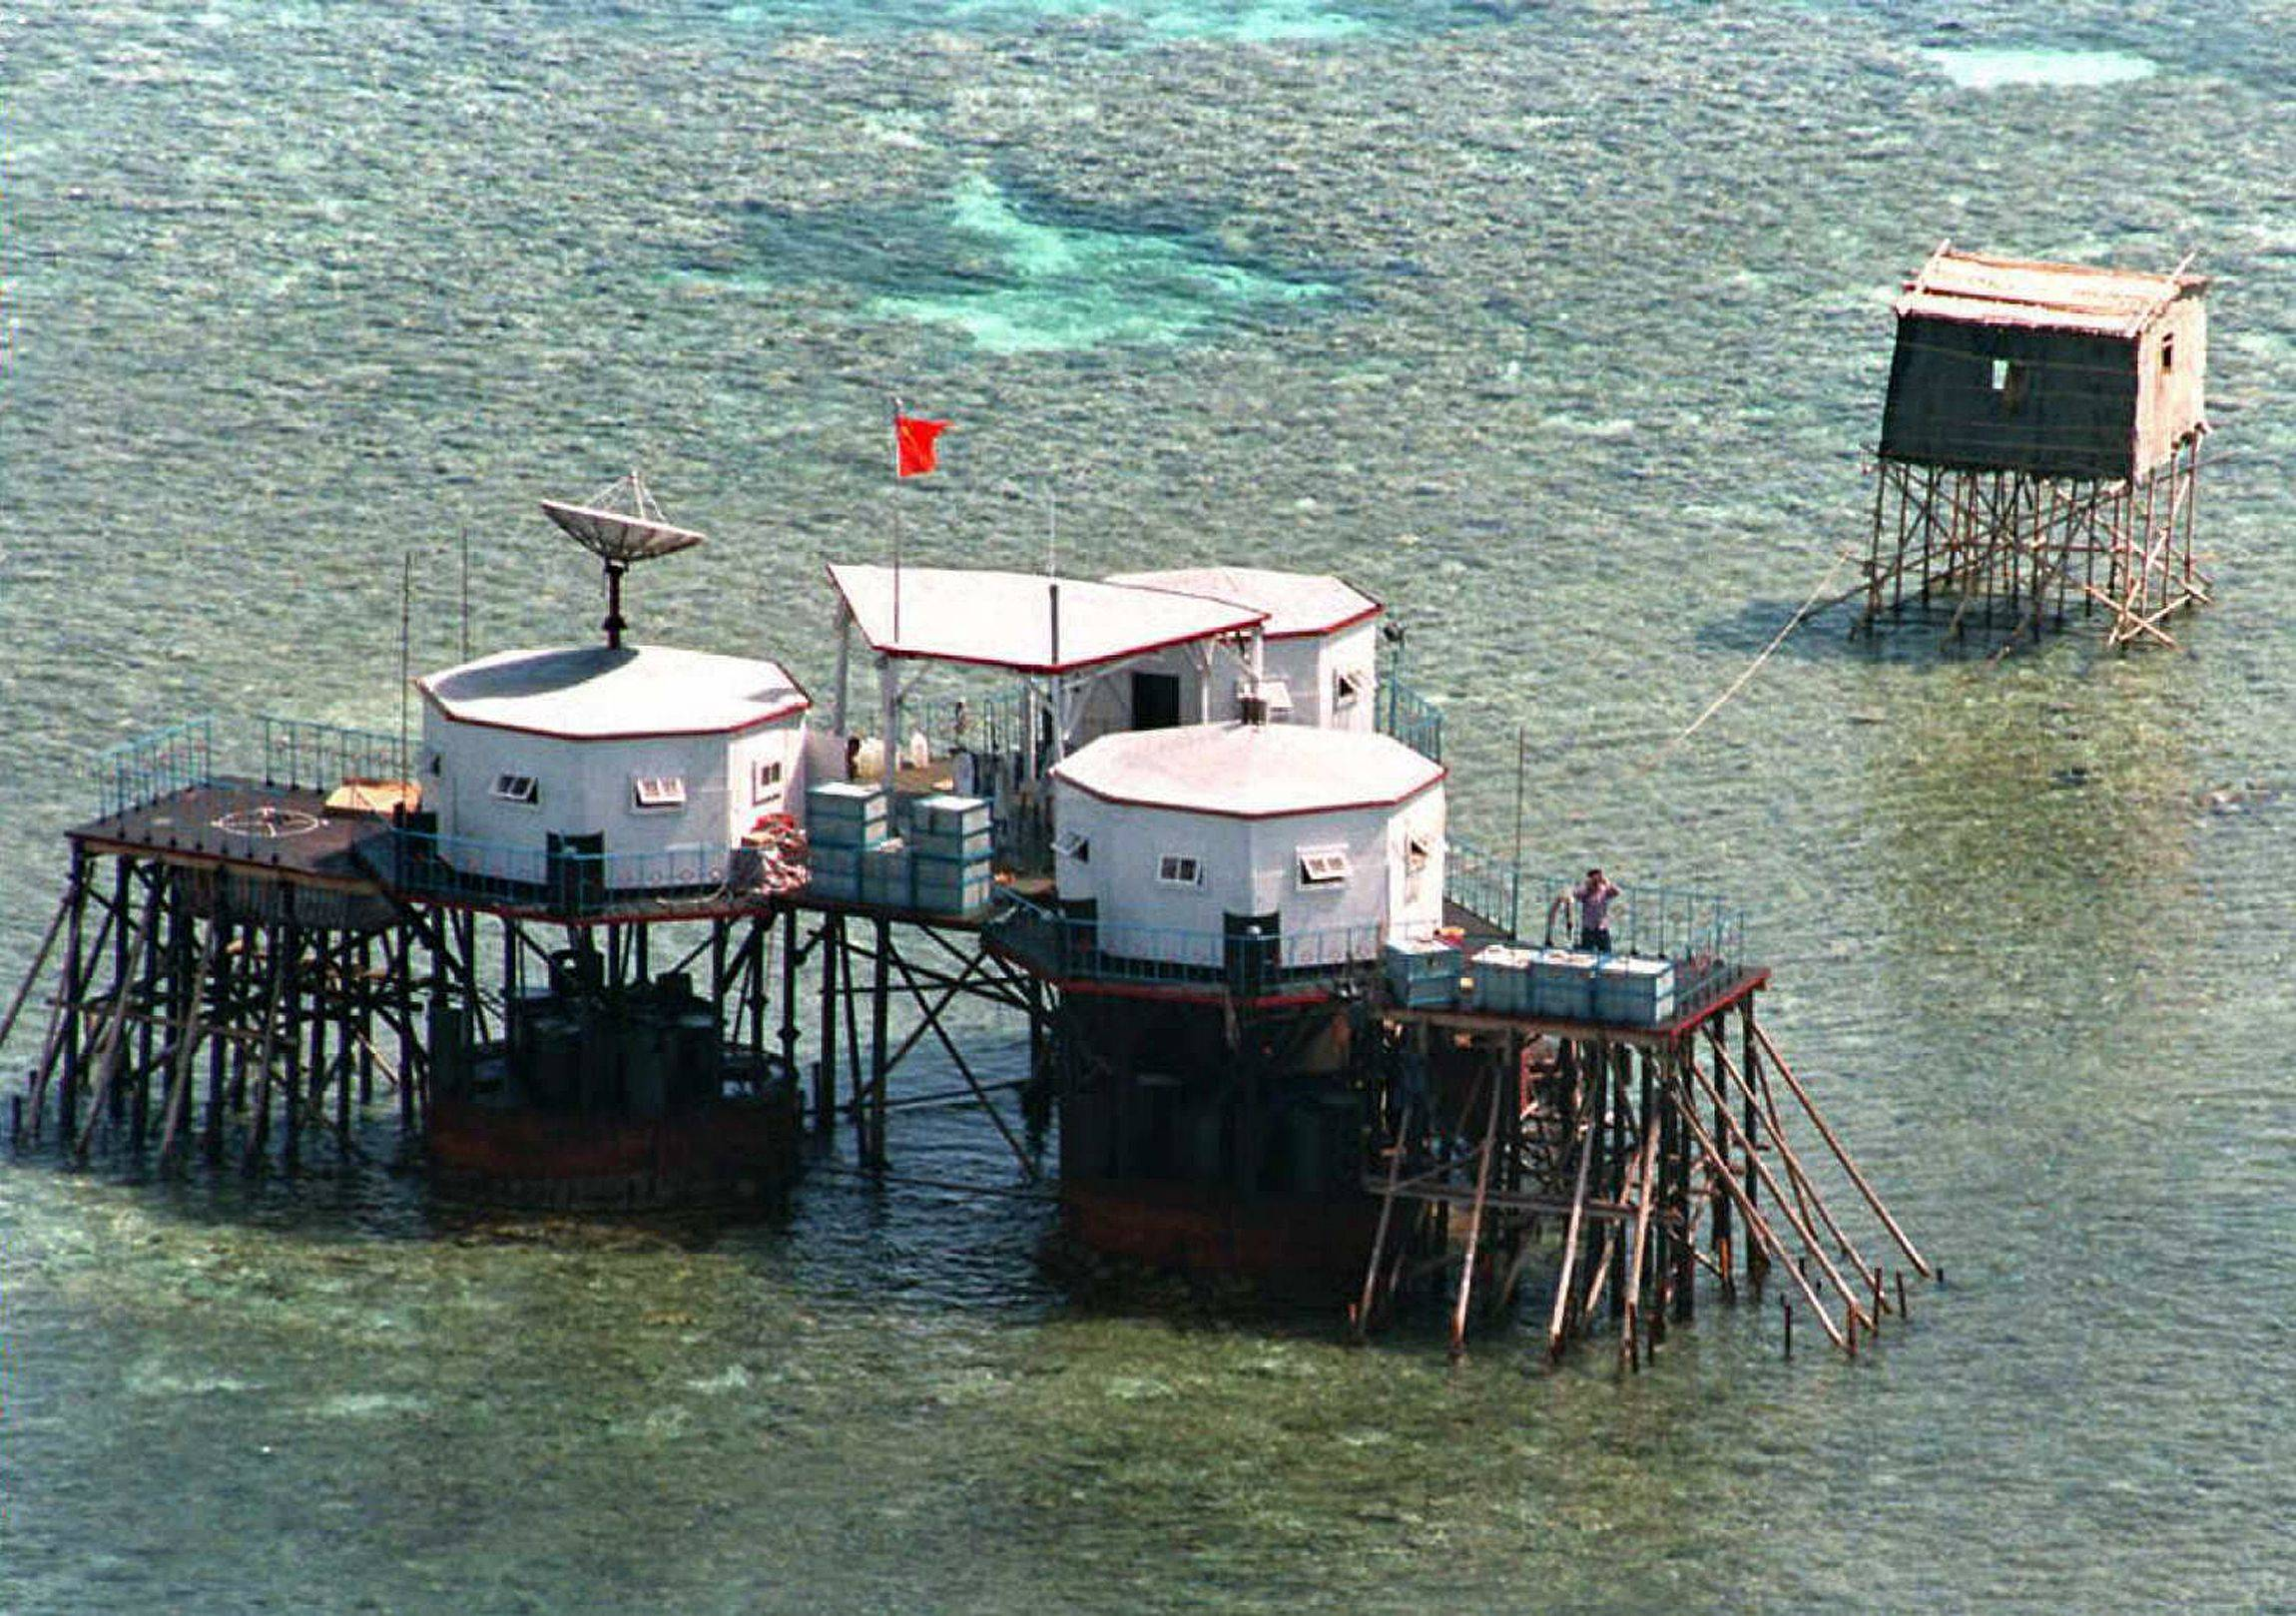 China's flag flies over newly built octagonal structures at Mischief Reef in the disputed Spratly Islands in 1995. U.S. Secretary of State Mike Pompeo announced July 13 that the United States would treat Beijing's pursuit of resources in the dispute-rife South China Sea as illegal. | AFP-JIJI